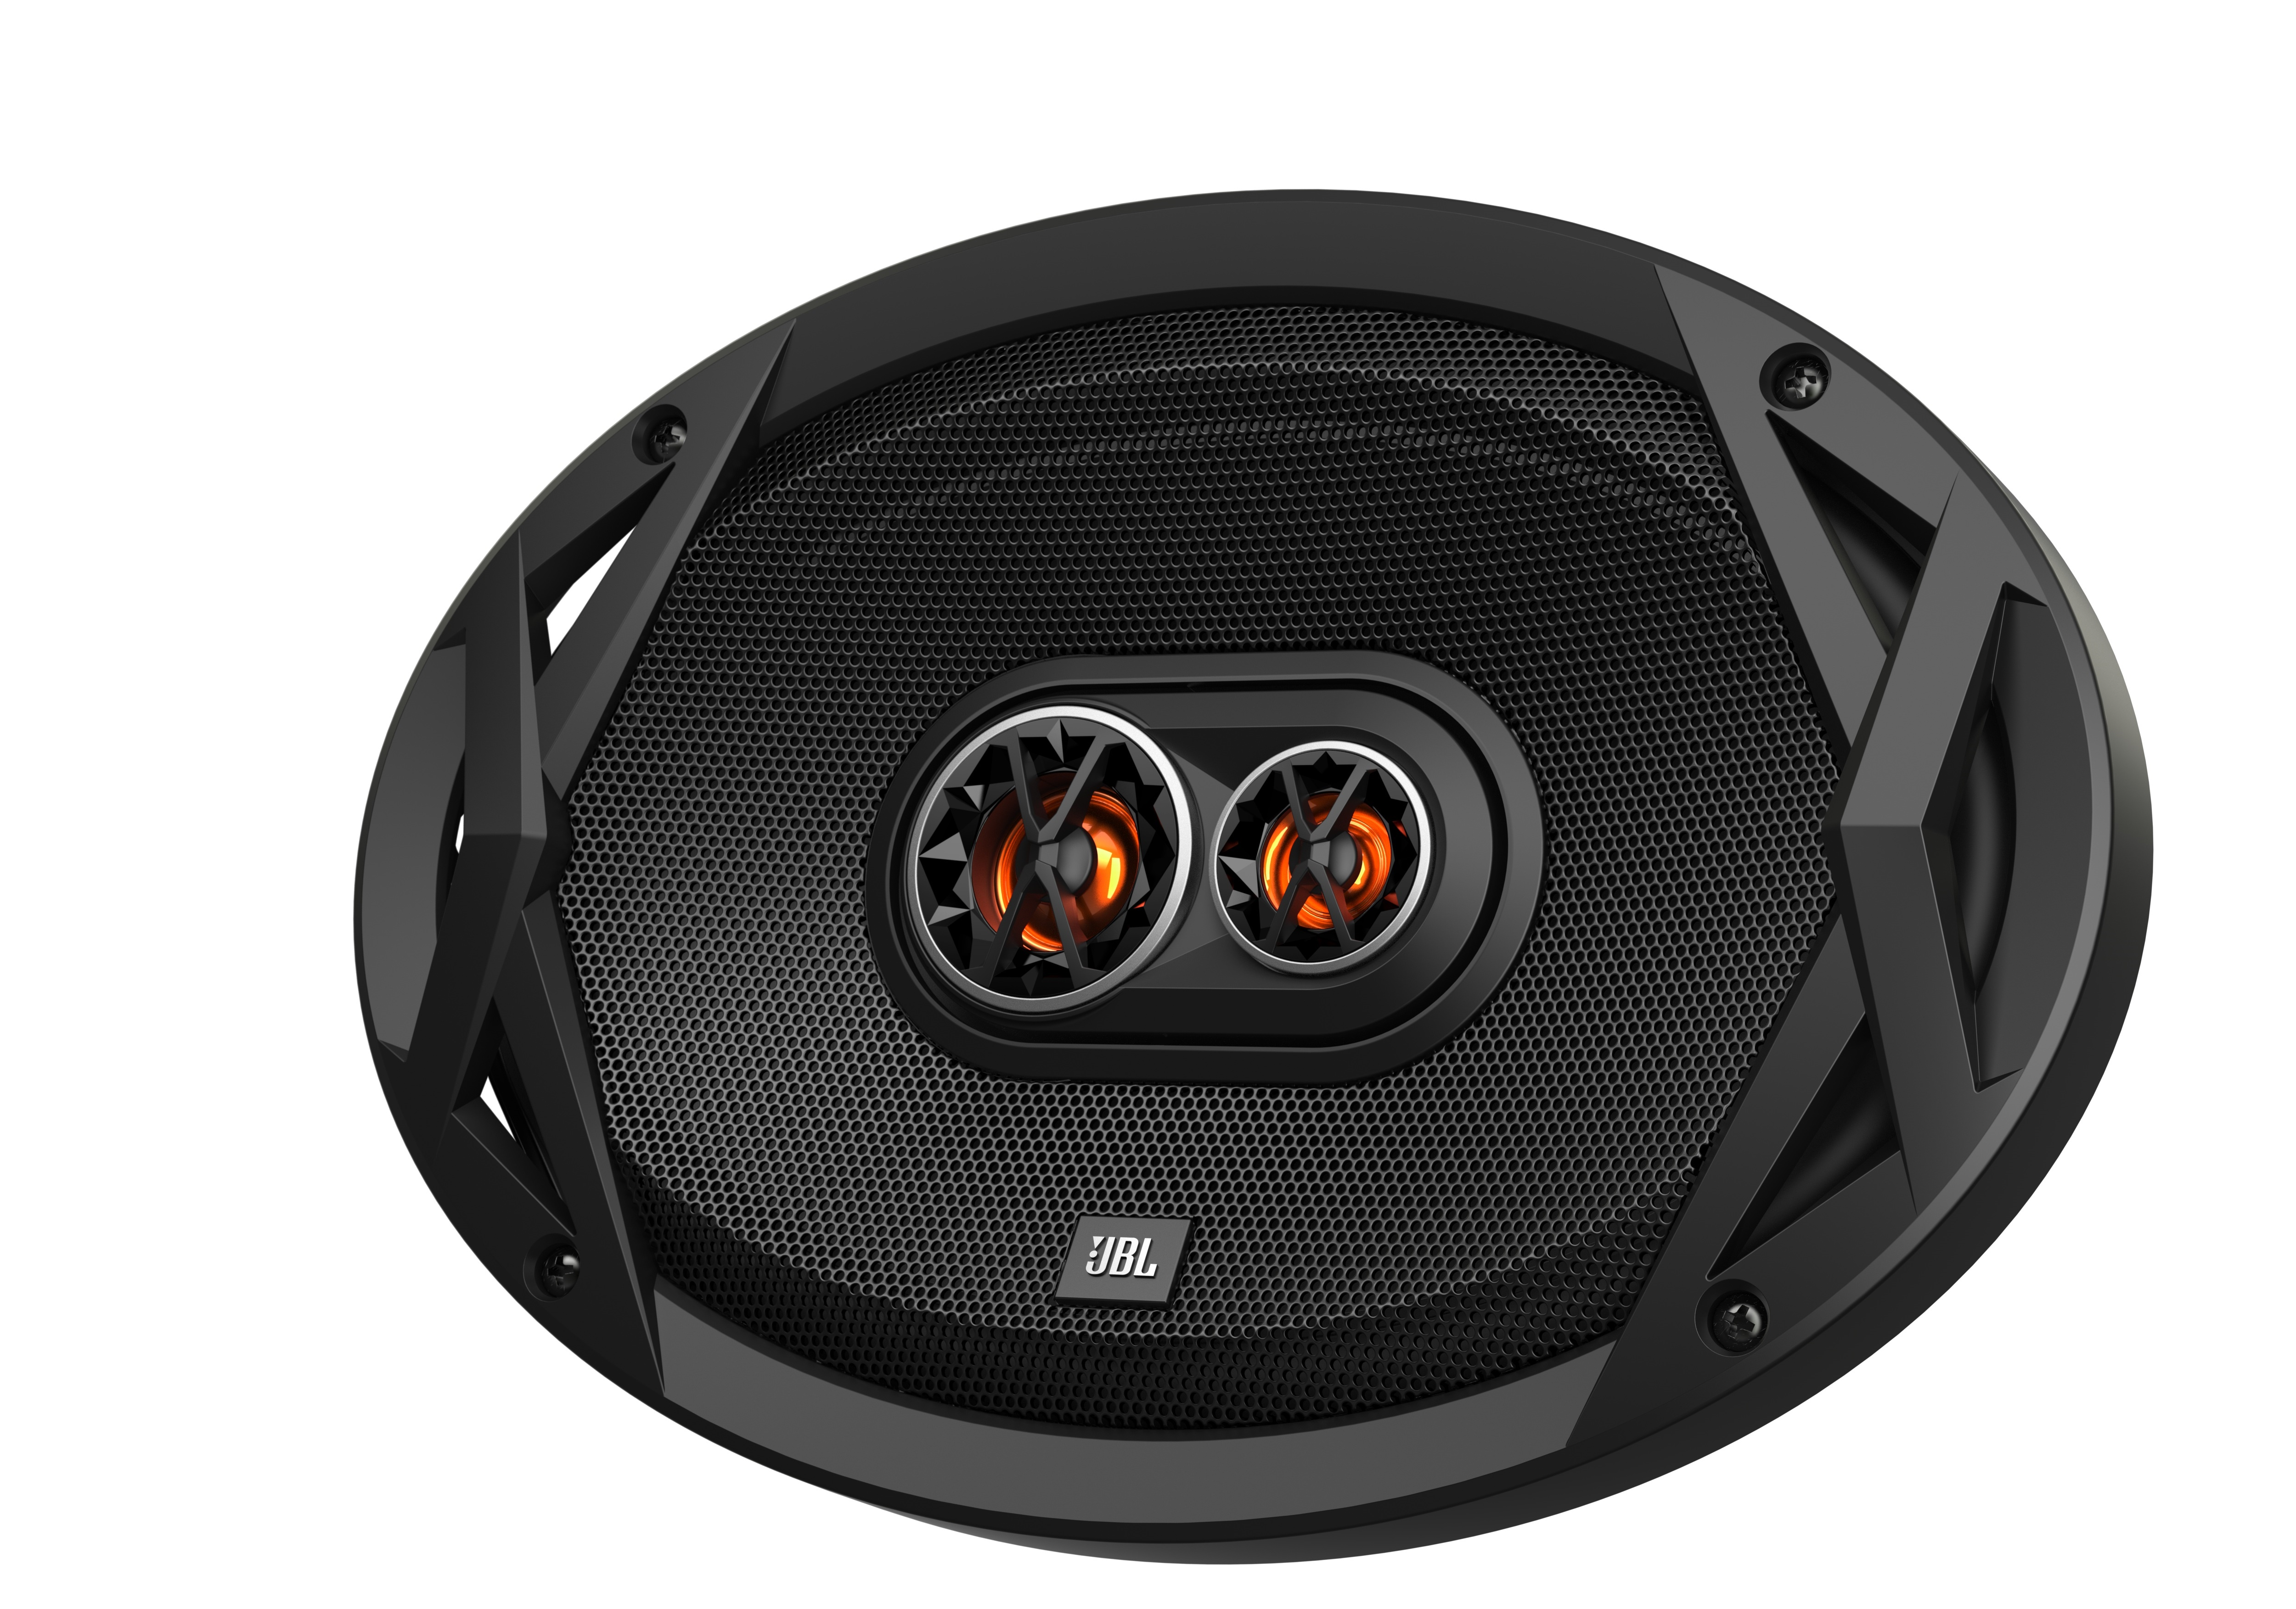 Jbl Introduces Club Series Speaker And Amplifier Line For The Car